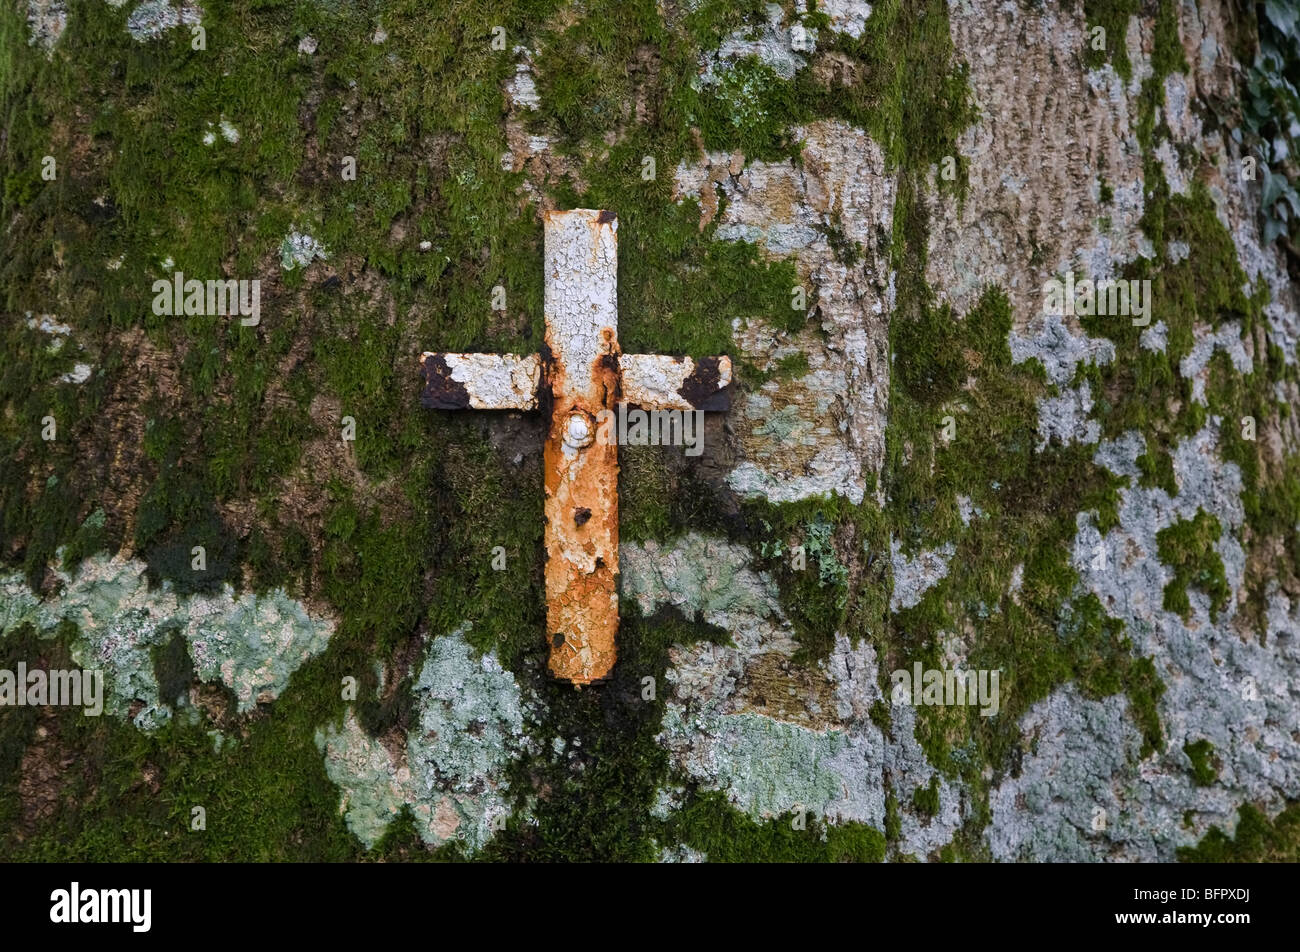 Cross Nailed into Mossy Tree at St Mullins Holy Well, County Kilkenny, Ireland - Stock Image